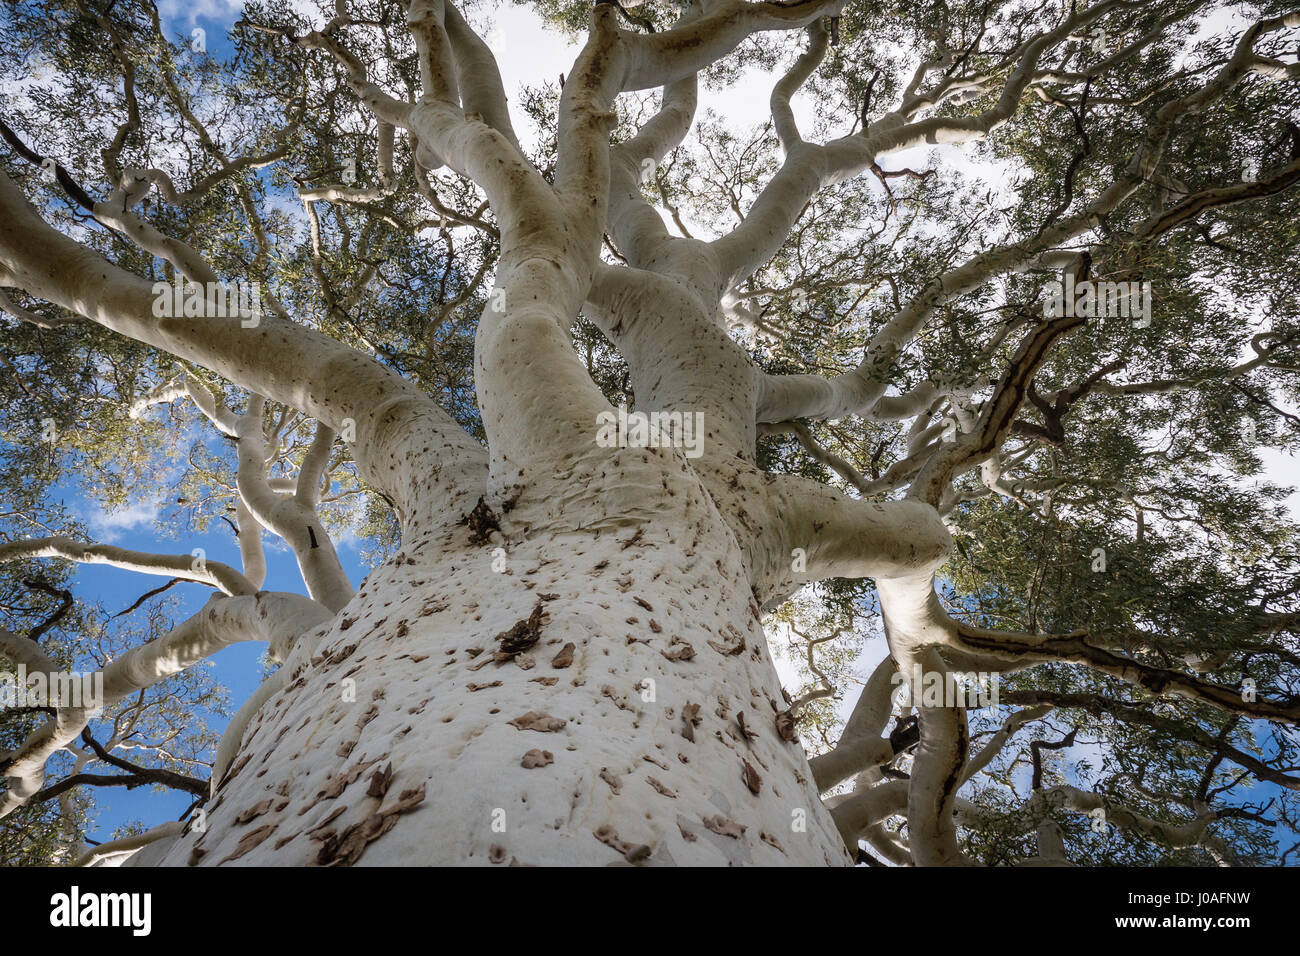 Alice springs Simpsons Gap ghost gum Northern Territory - Stock Image